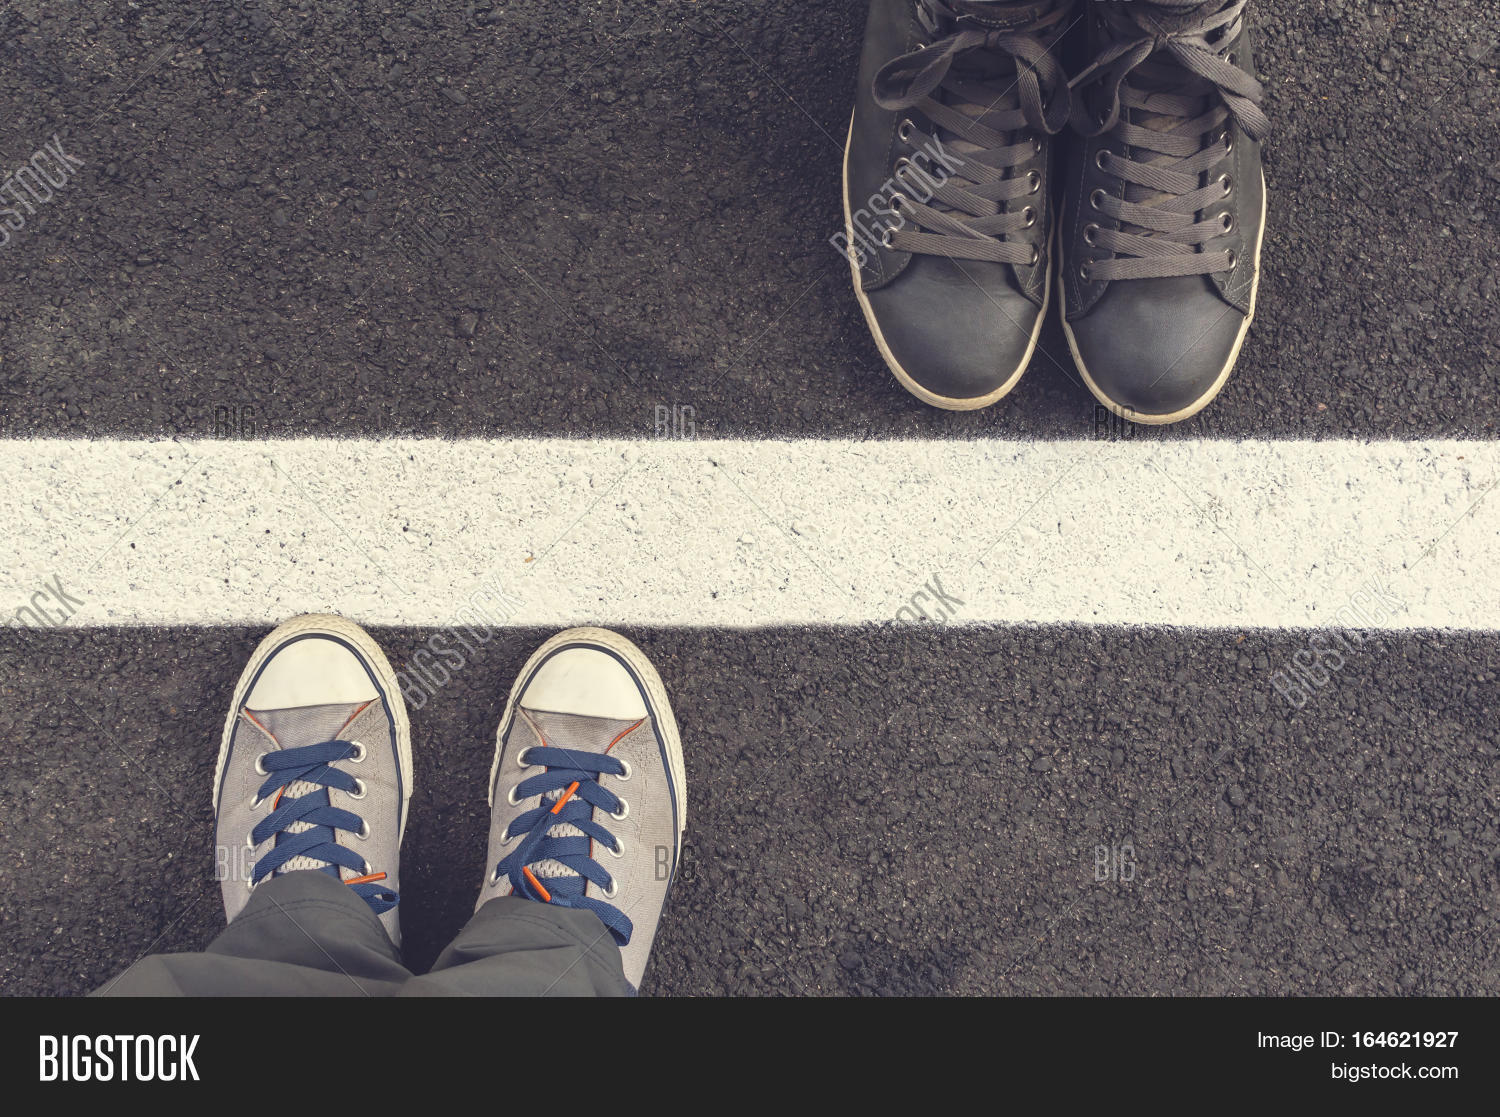 Two Pair Of Sneakers On A Asphapt Road Top View